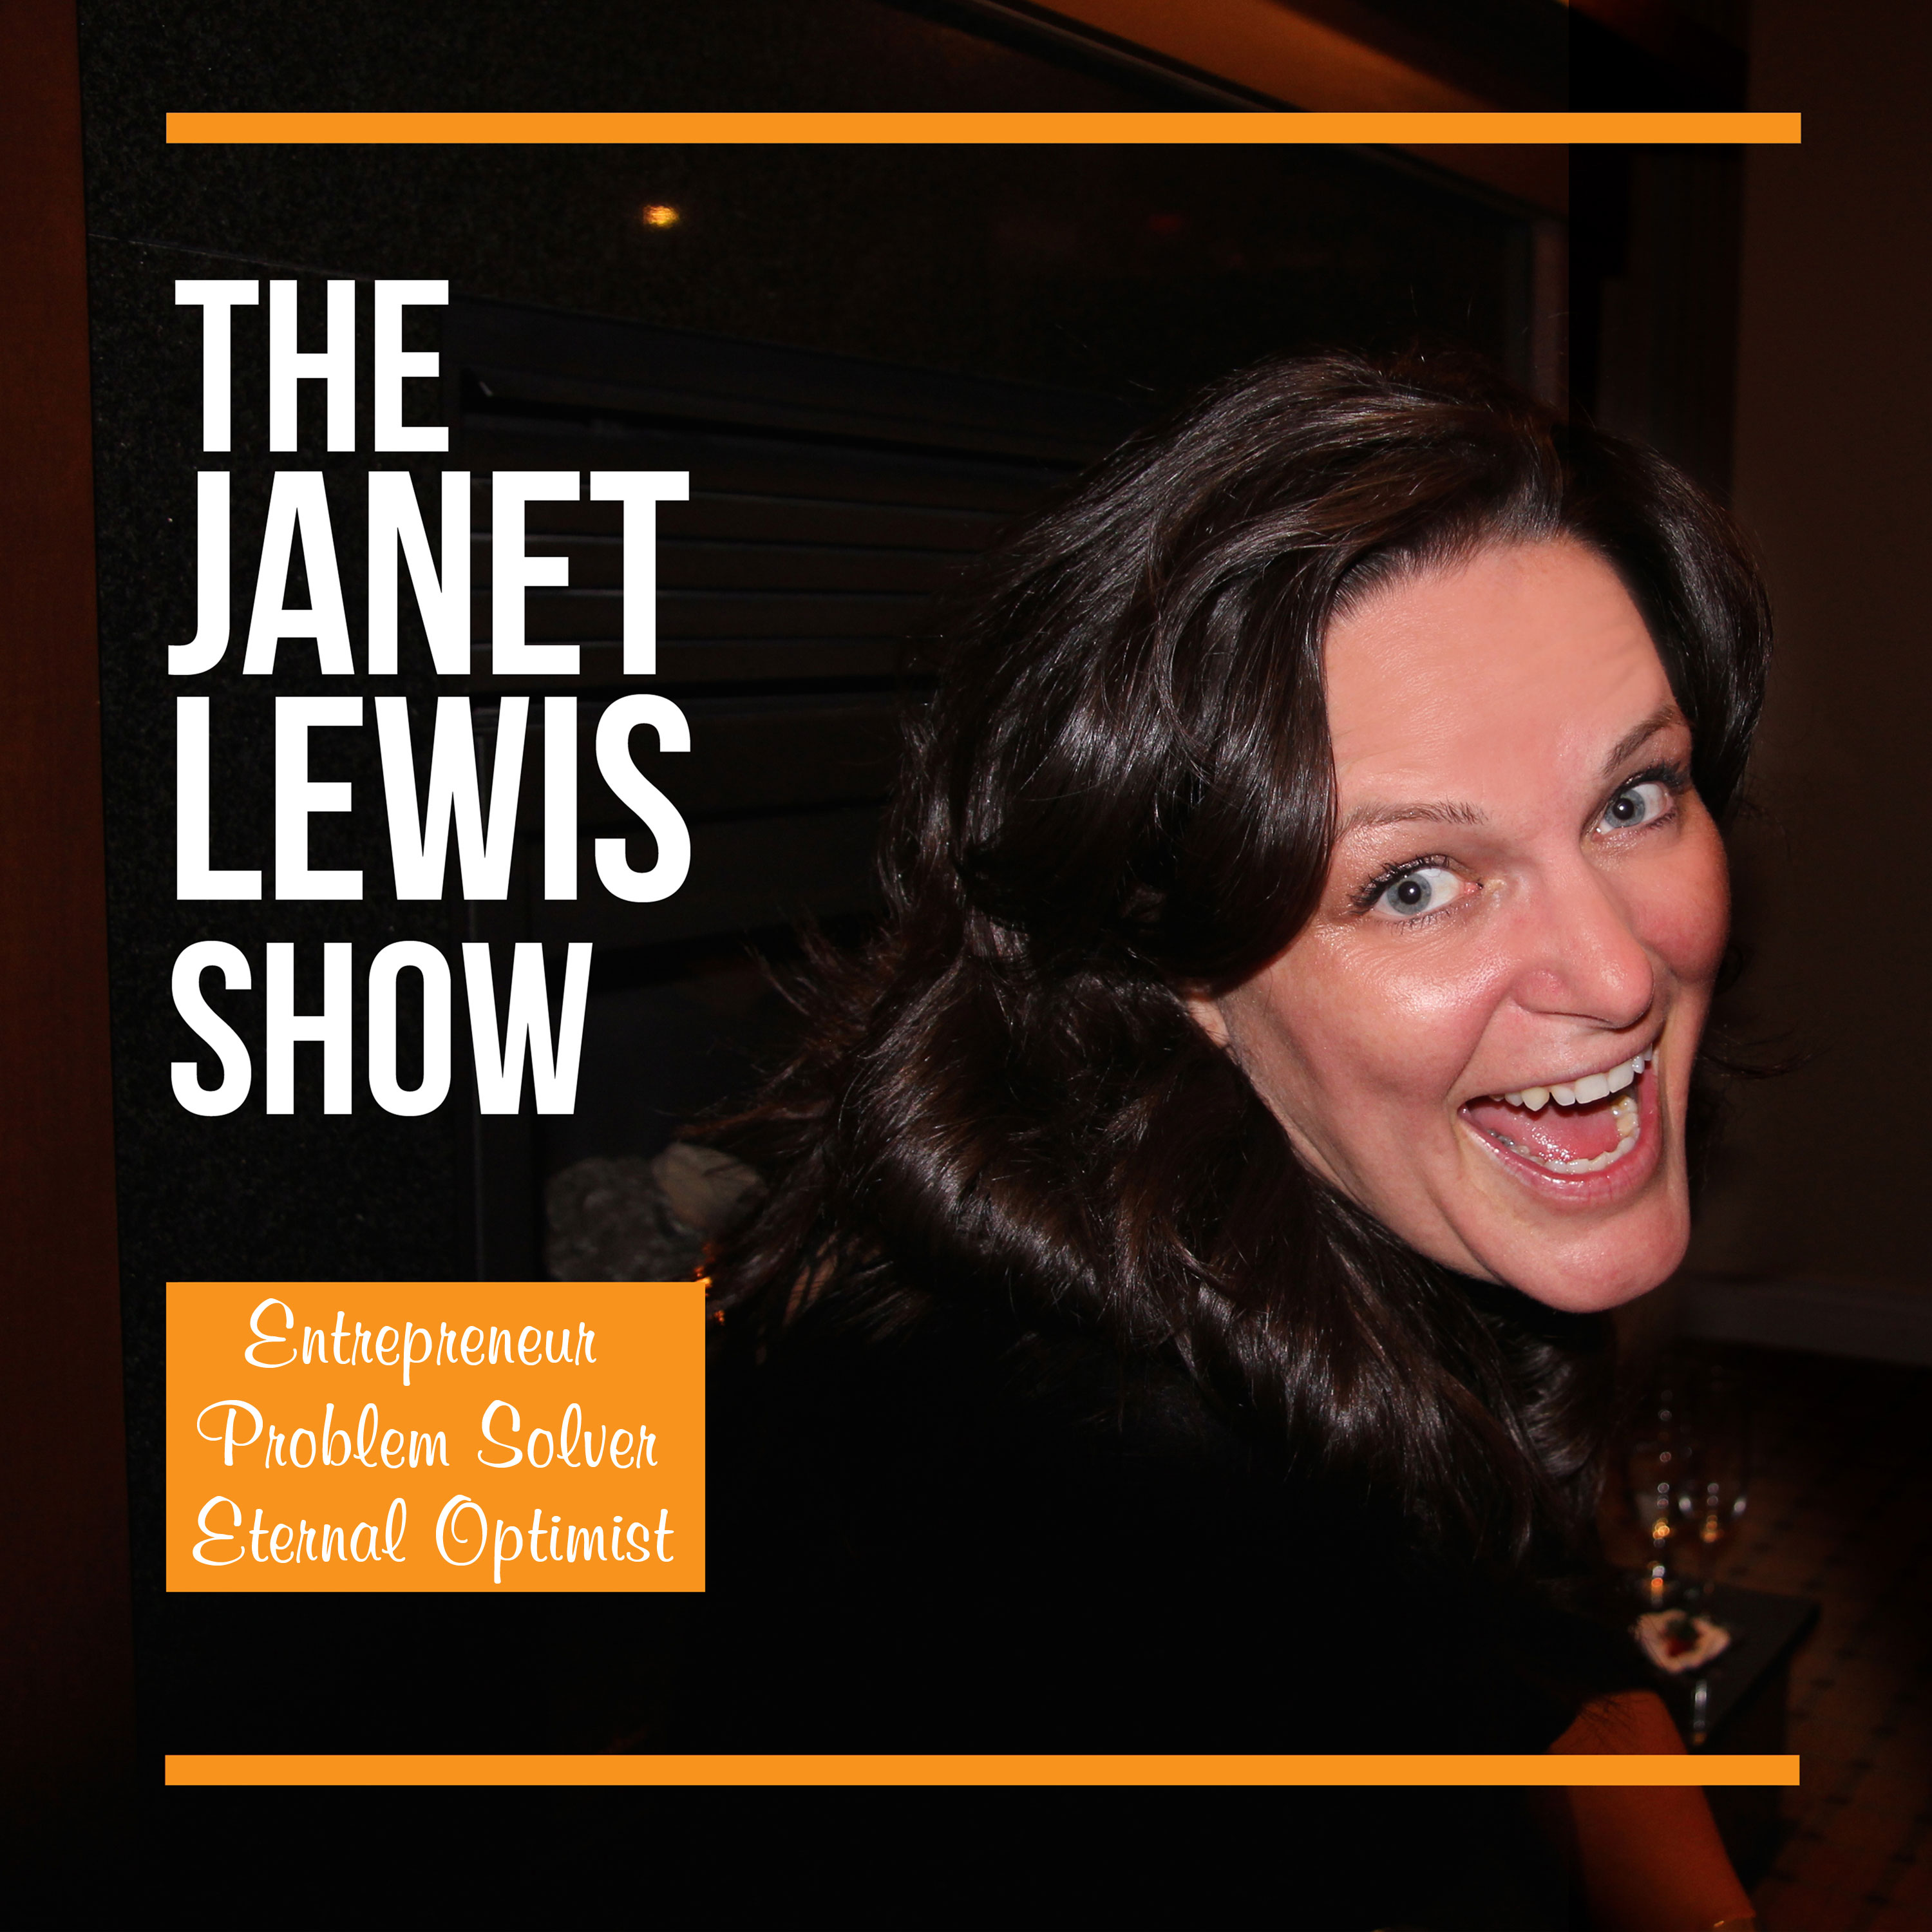 The Janet Lewis Show